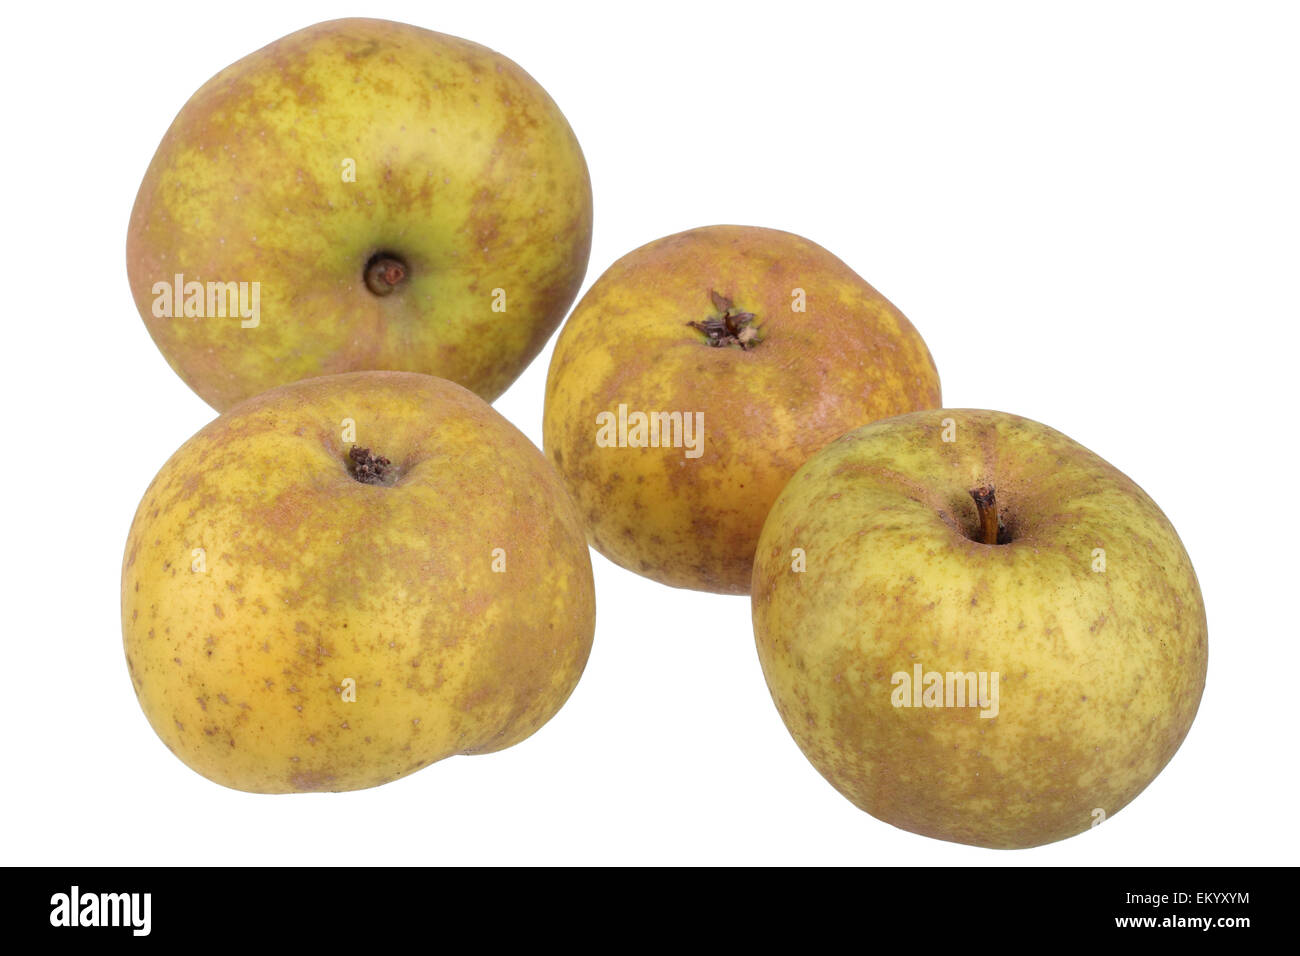 Apple variety Canada Reinette Stock Photo  81133800   Alamy Apple variety Canada Reinette